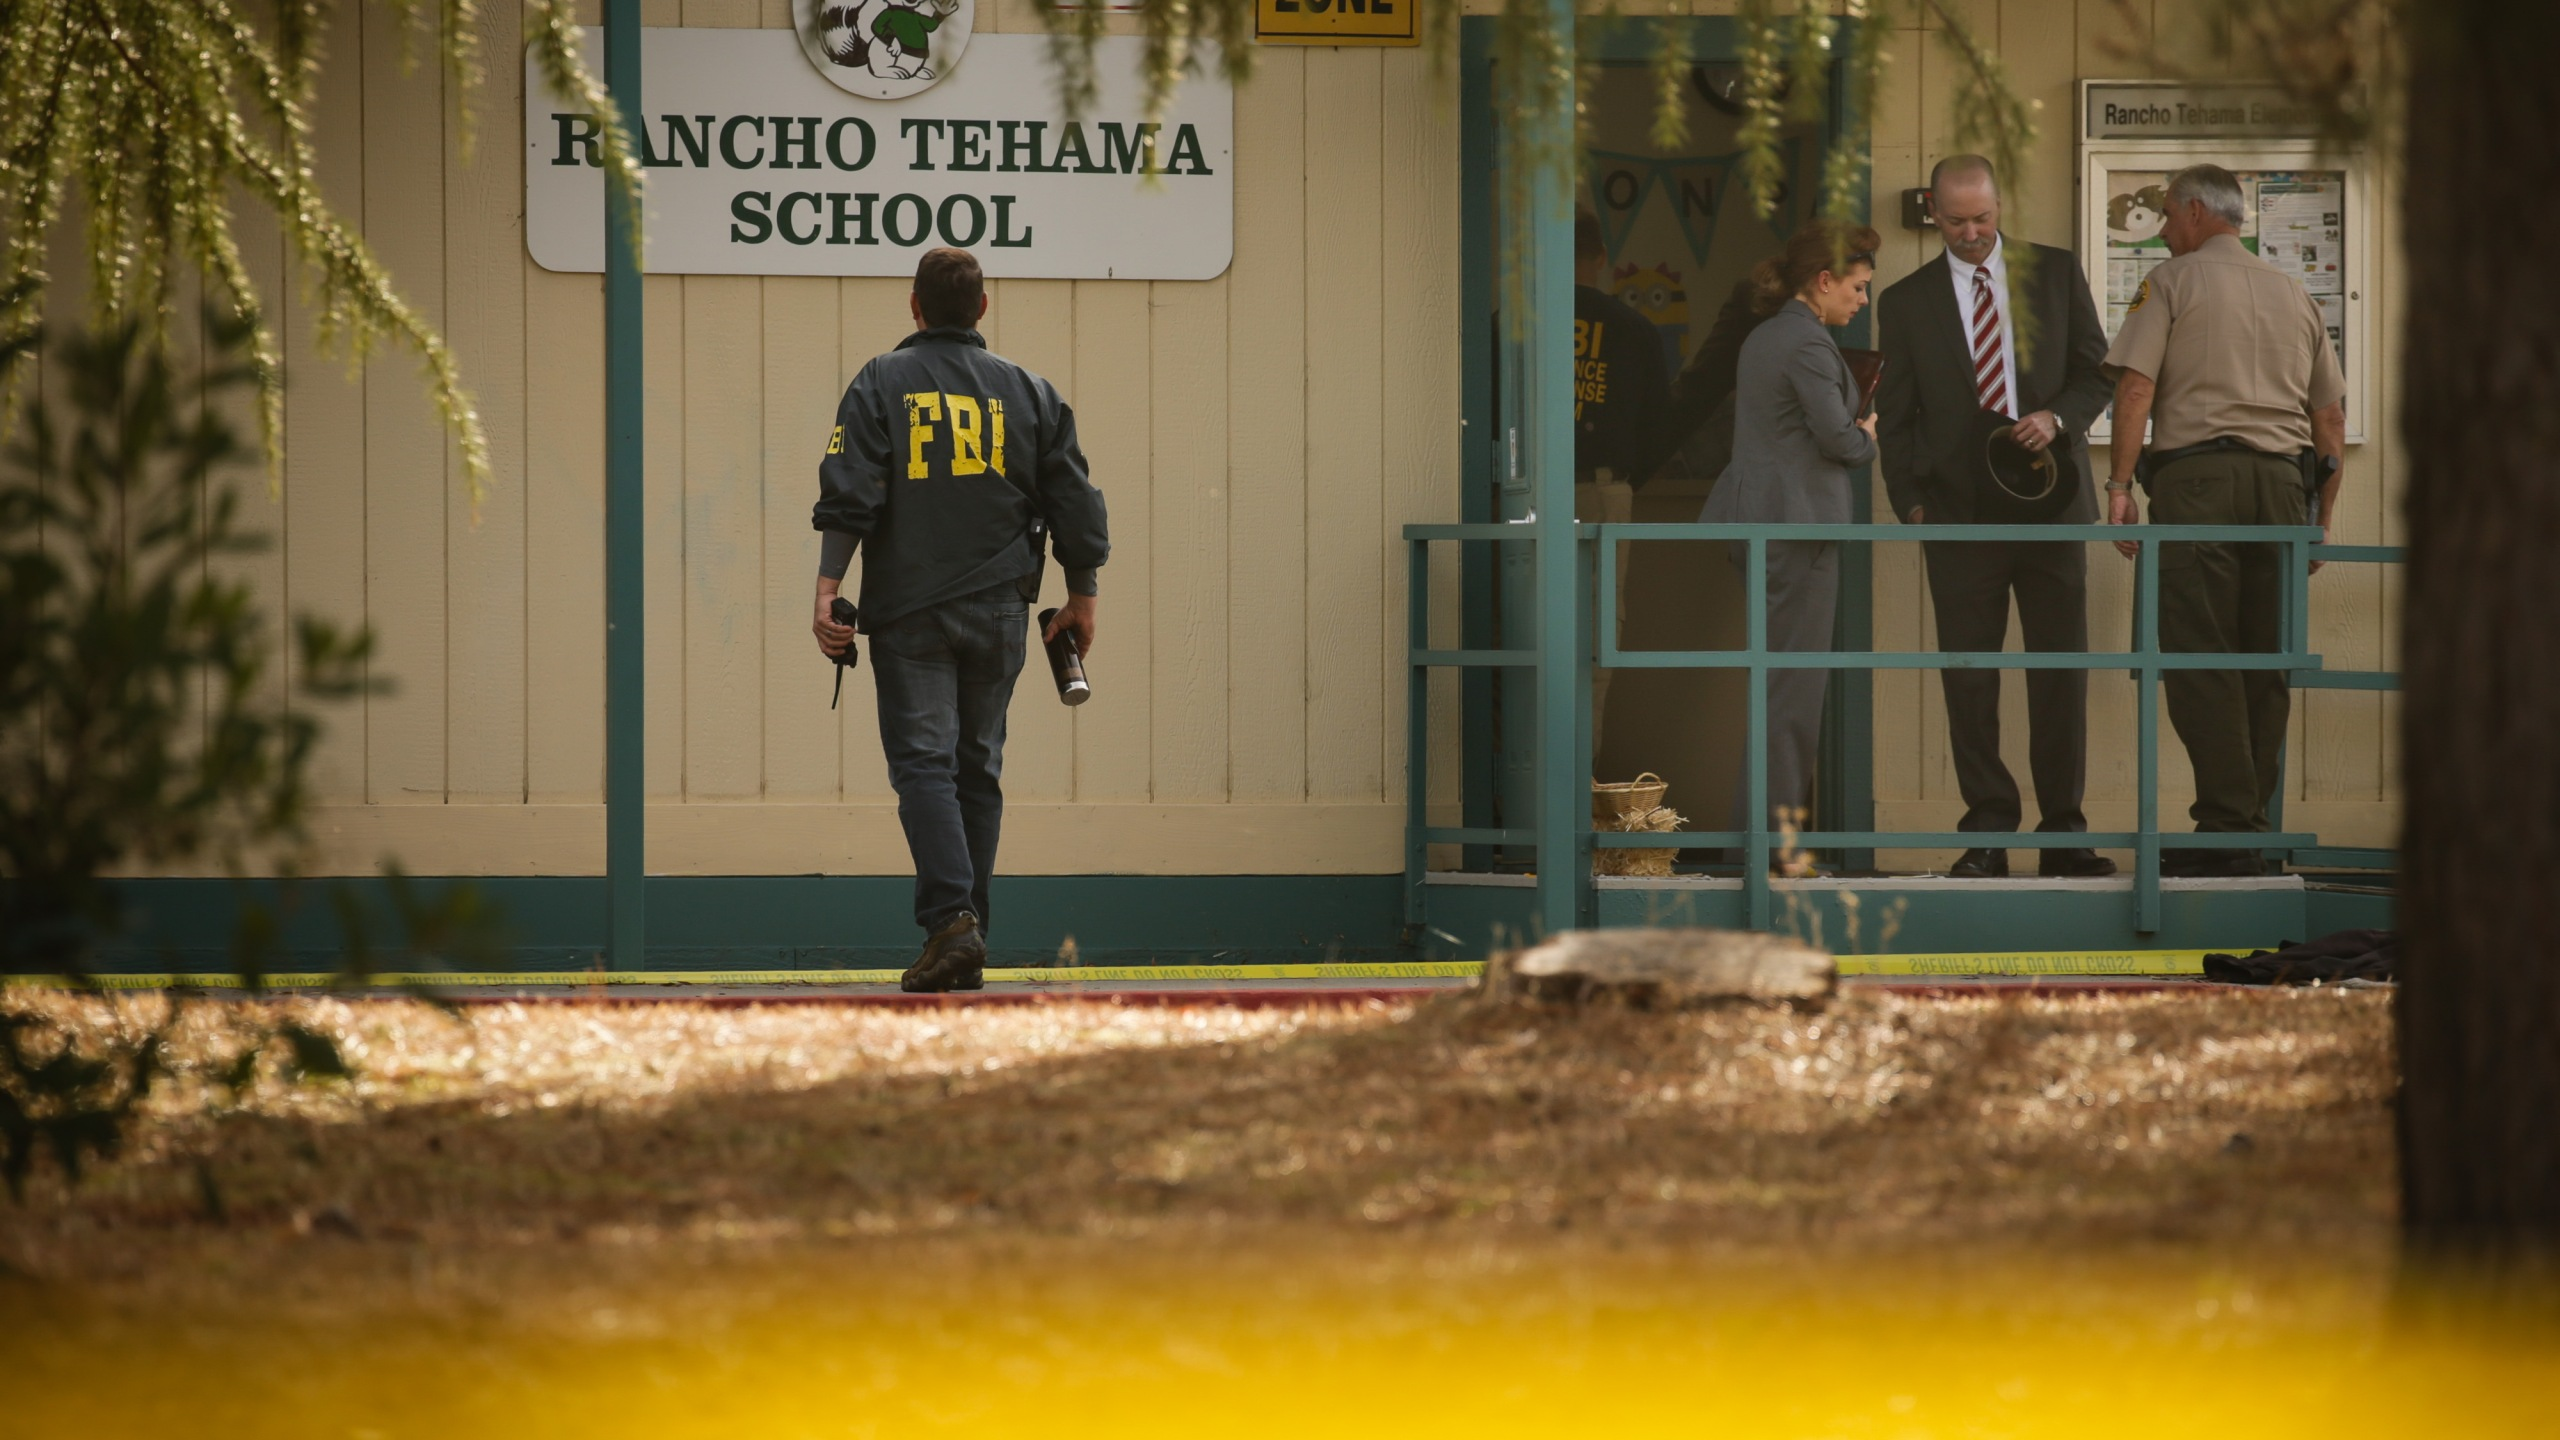 FBI agents are seen behind yellow crime scene tape outside Rancho Tehama Elementary School after a shooting in the morning on November 14, 2017, in Rancho Tehama, California. Witness Brian Rogers – who was across the street when the first shots rang out – said he heard single-fire shots by the school as if someone were taking time to pick targets a shot and the yelp of a dog, and to the south, a man at the municipal airport screaming for help, and more shooting there. (Credit: ELIJAH NOUVELAGE/AFP/Getty Images)